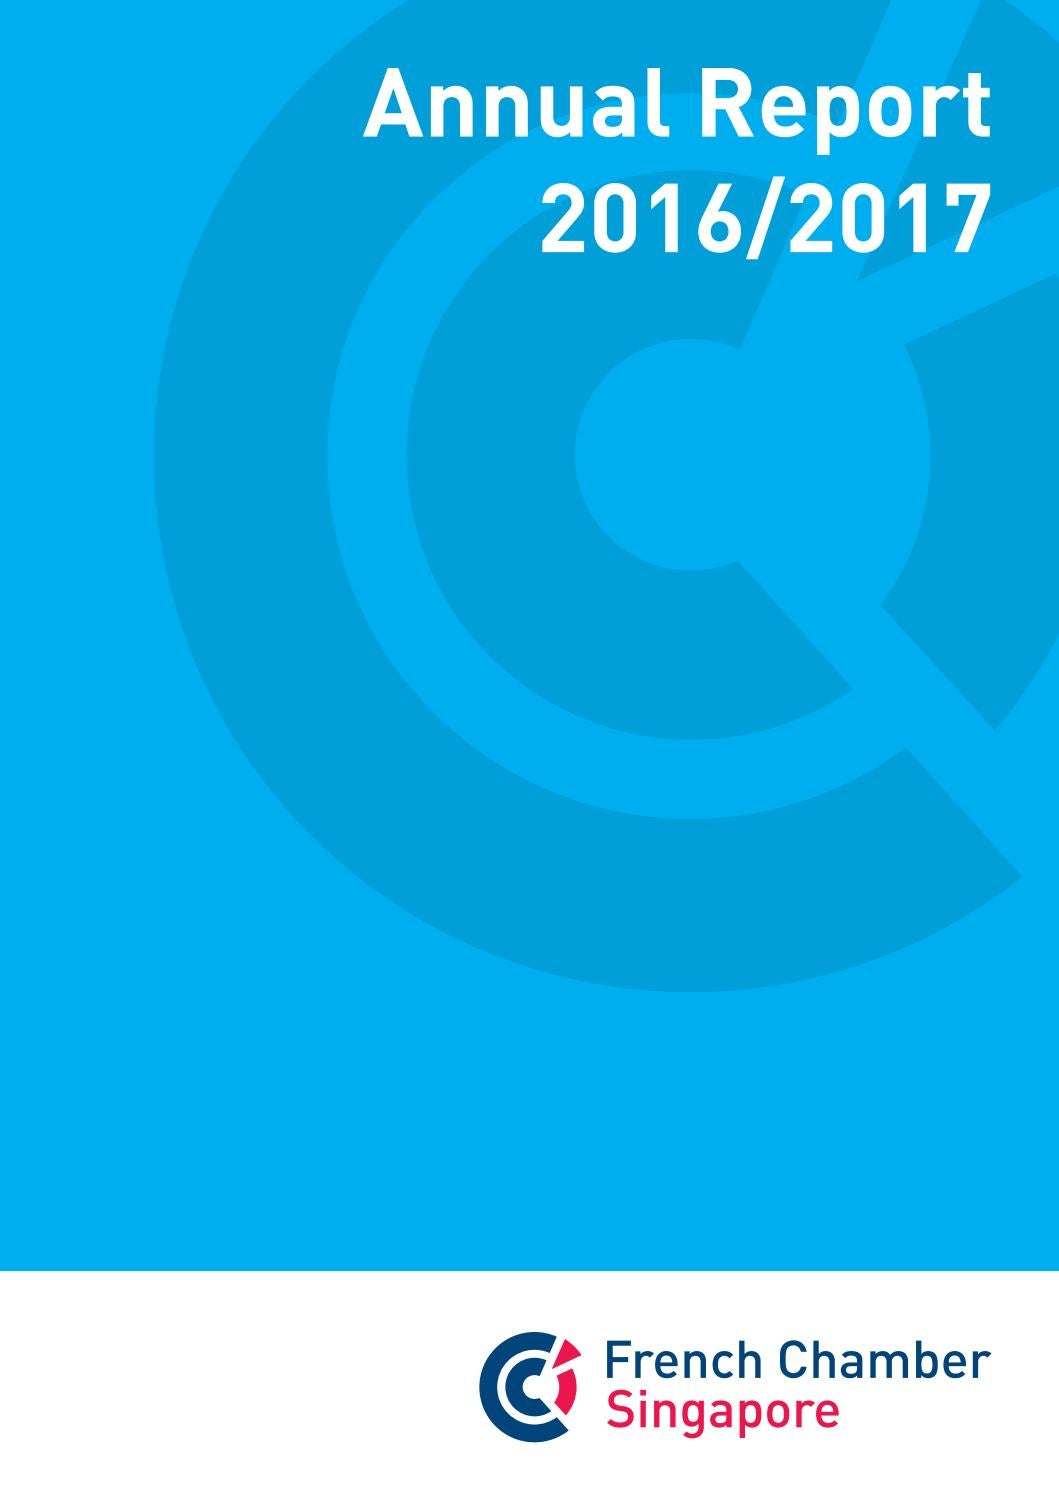 French Chamber Singapore Annual Report 2016/2017 by The